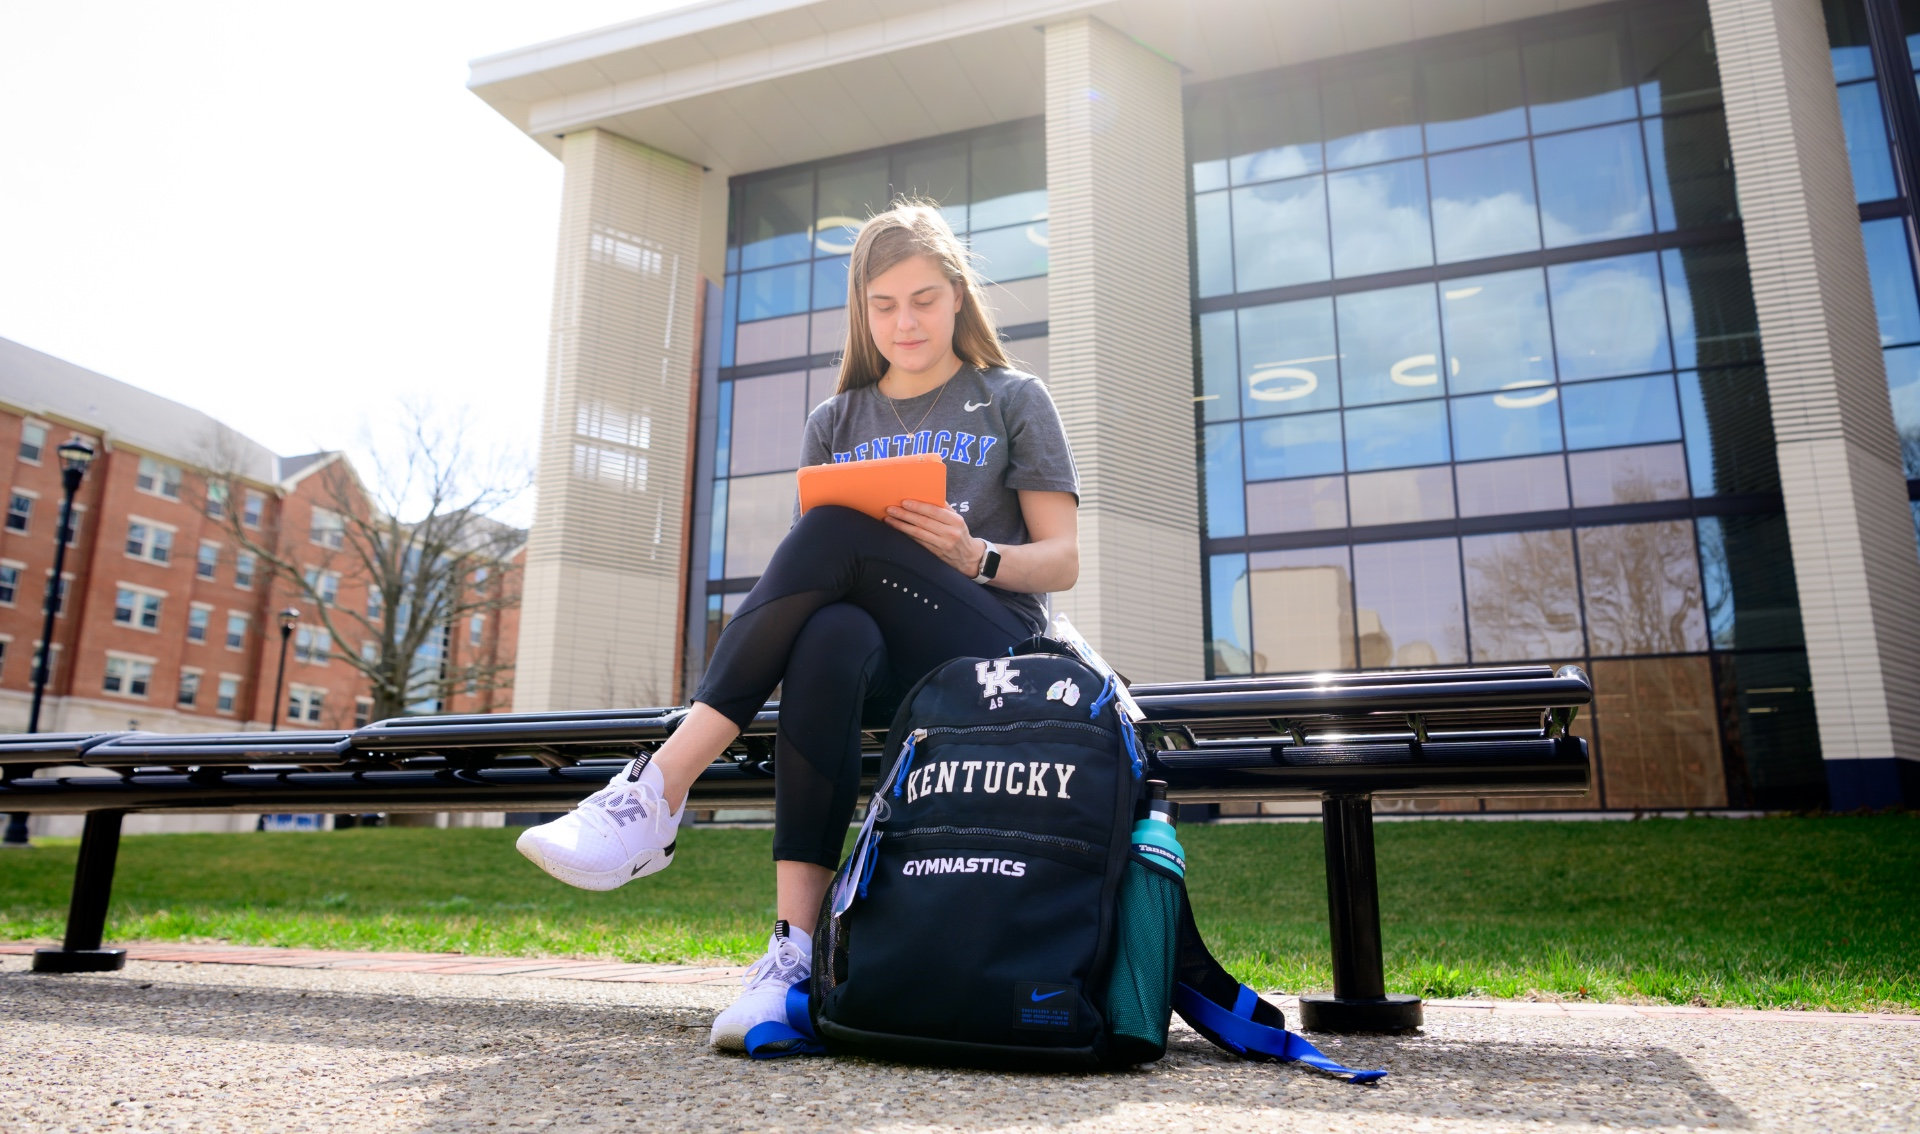 Allison sits on the bench outside the library, with her backpack on the ground beside her. She is looking at an iPad in an orange case.